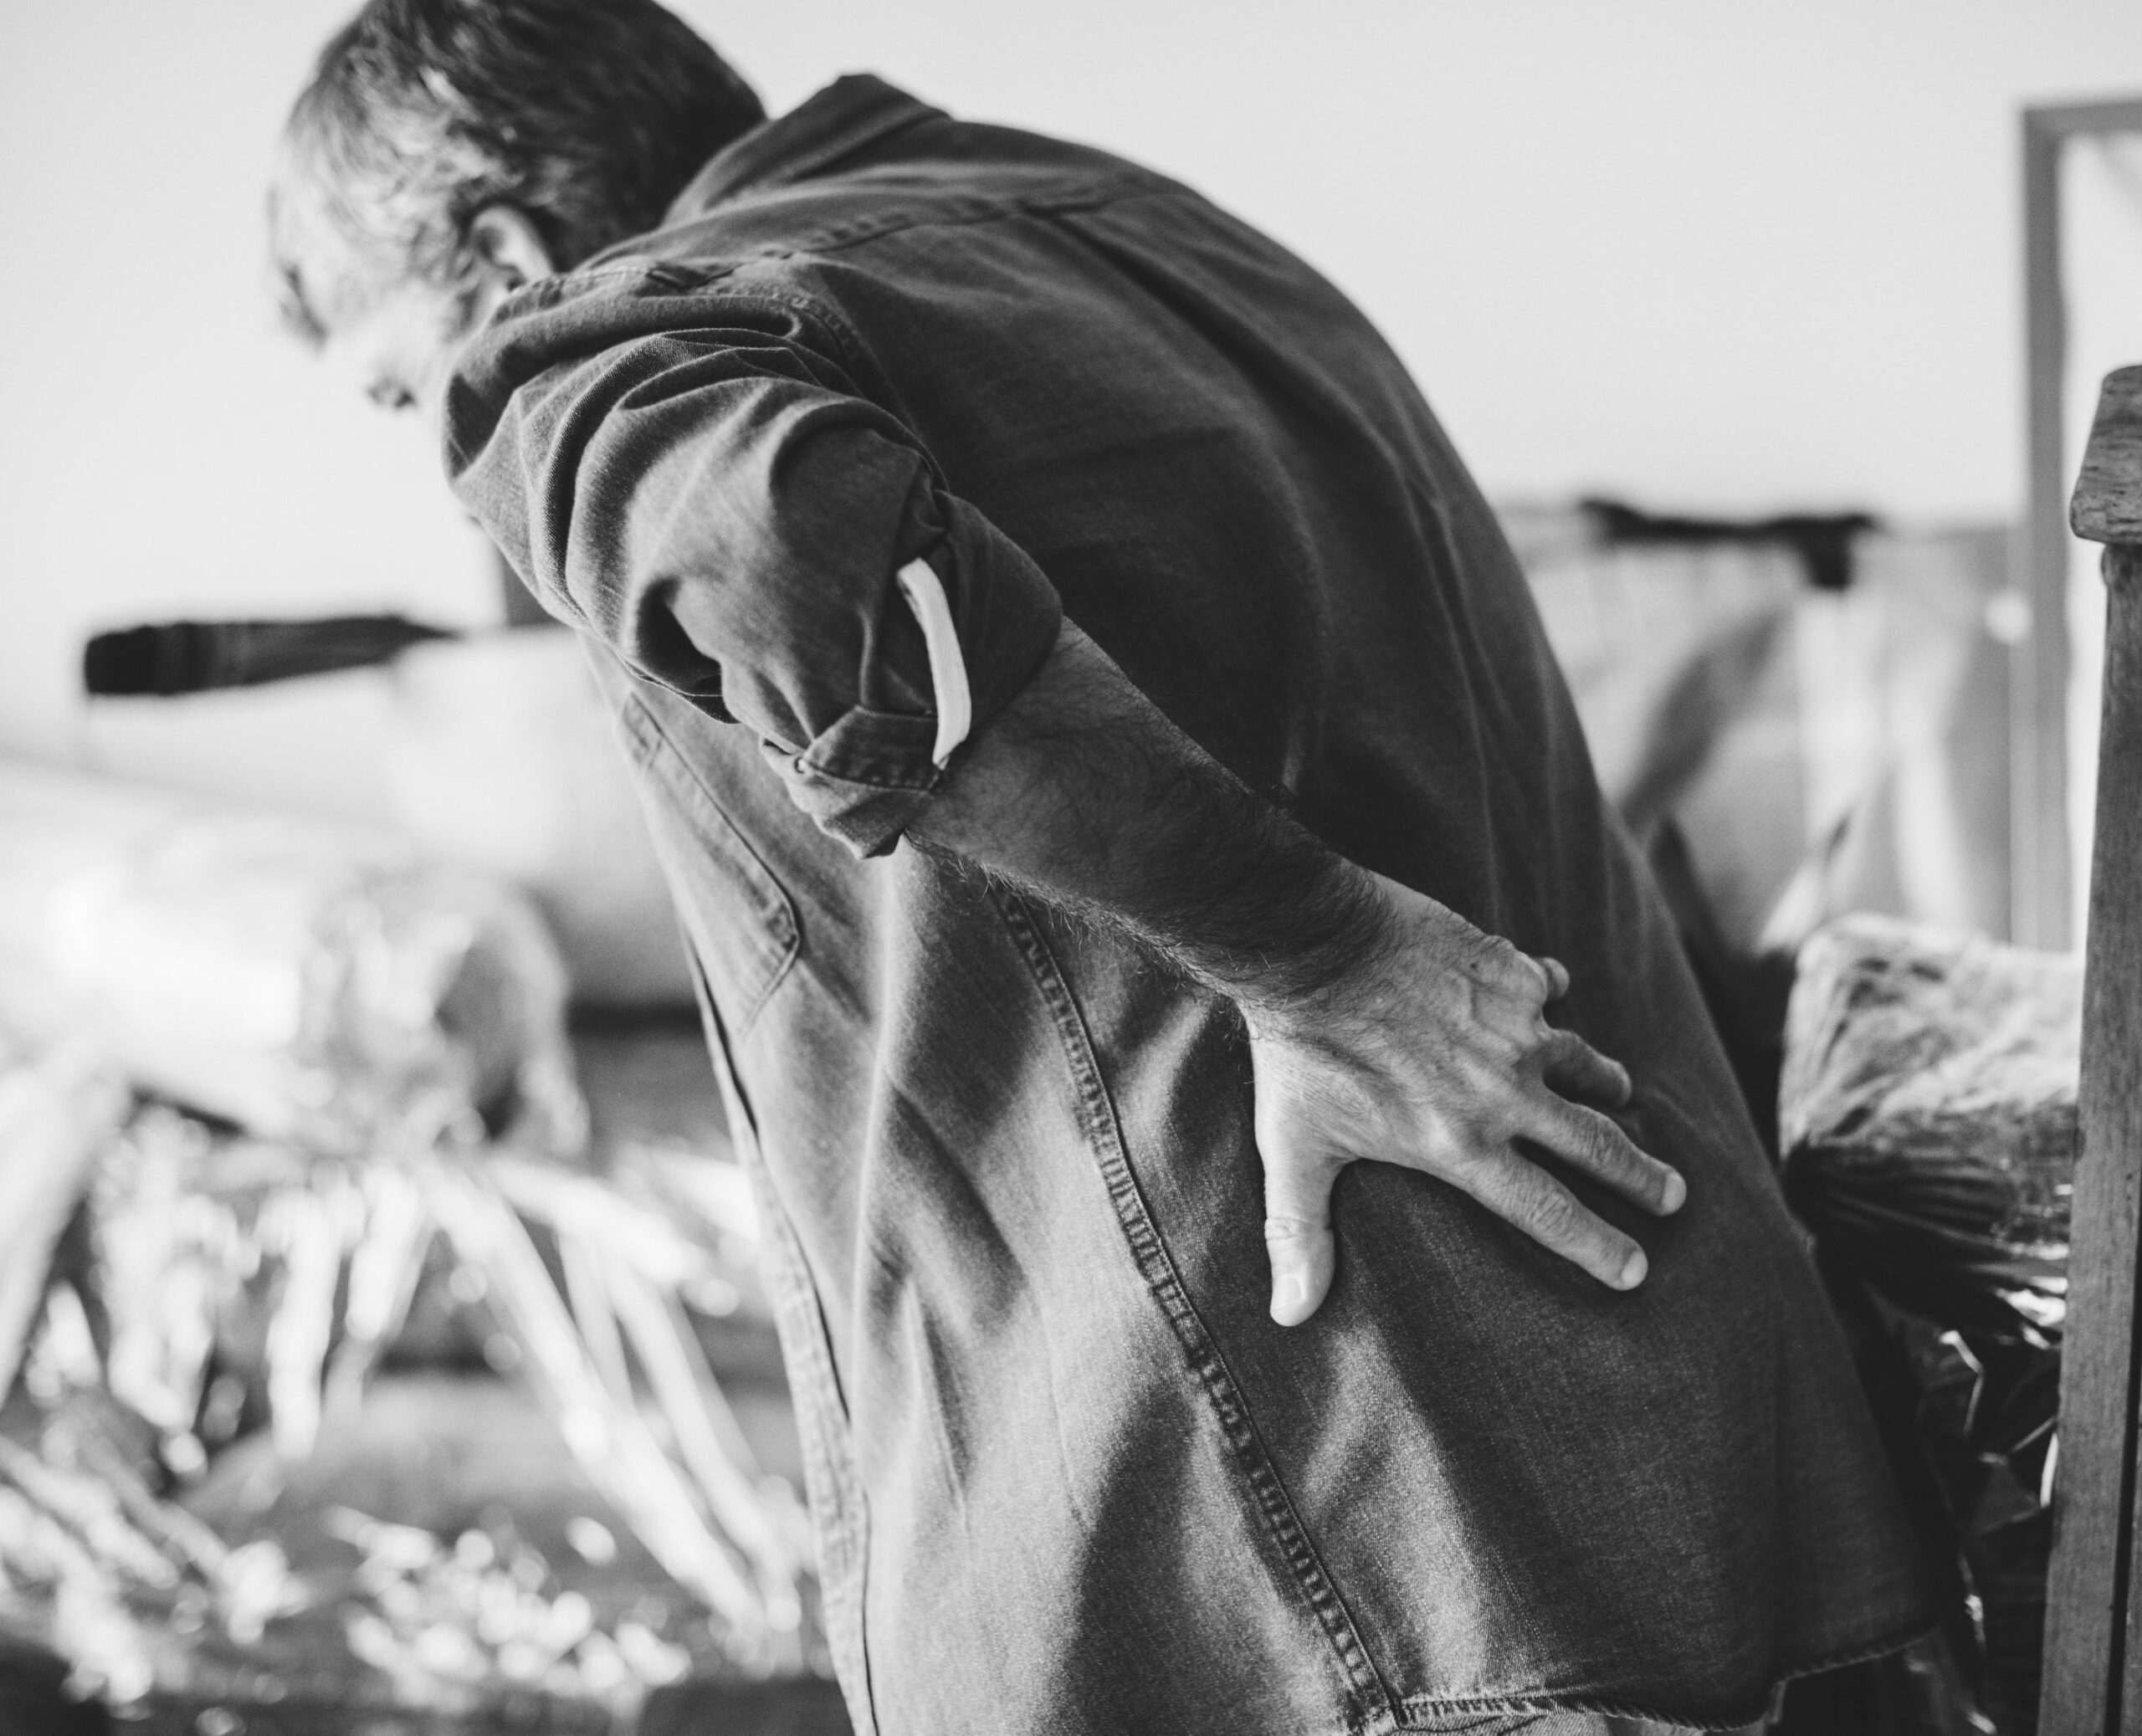 The role of physiotherapy in preventing and managing pain